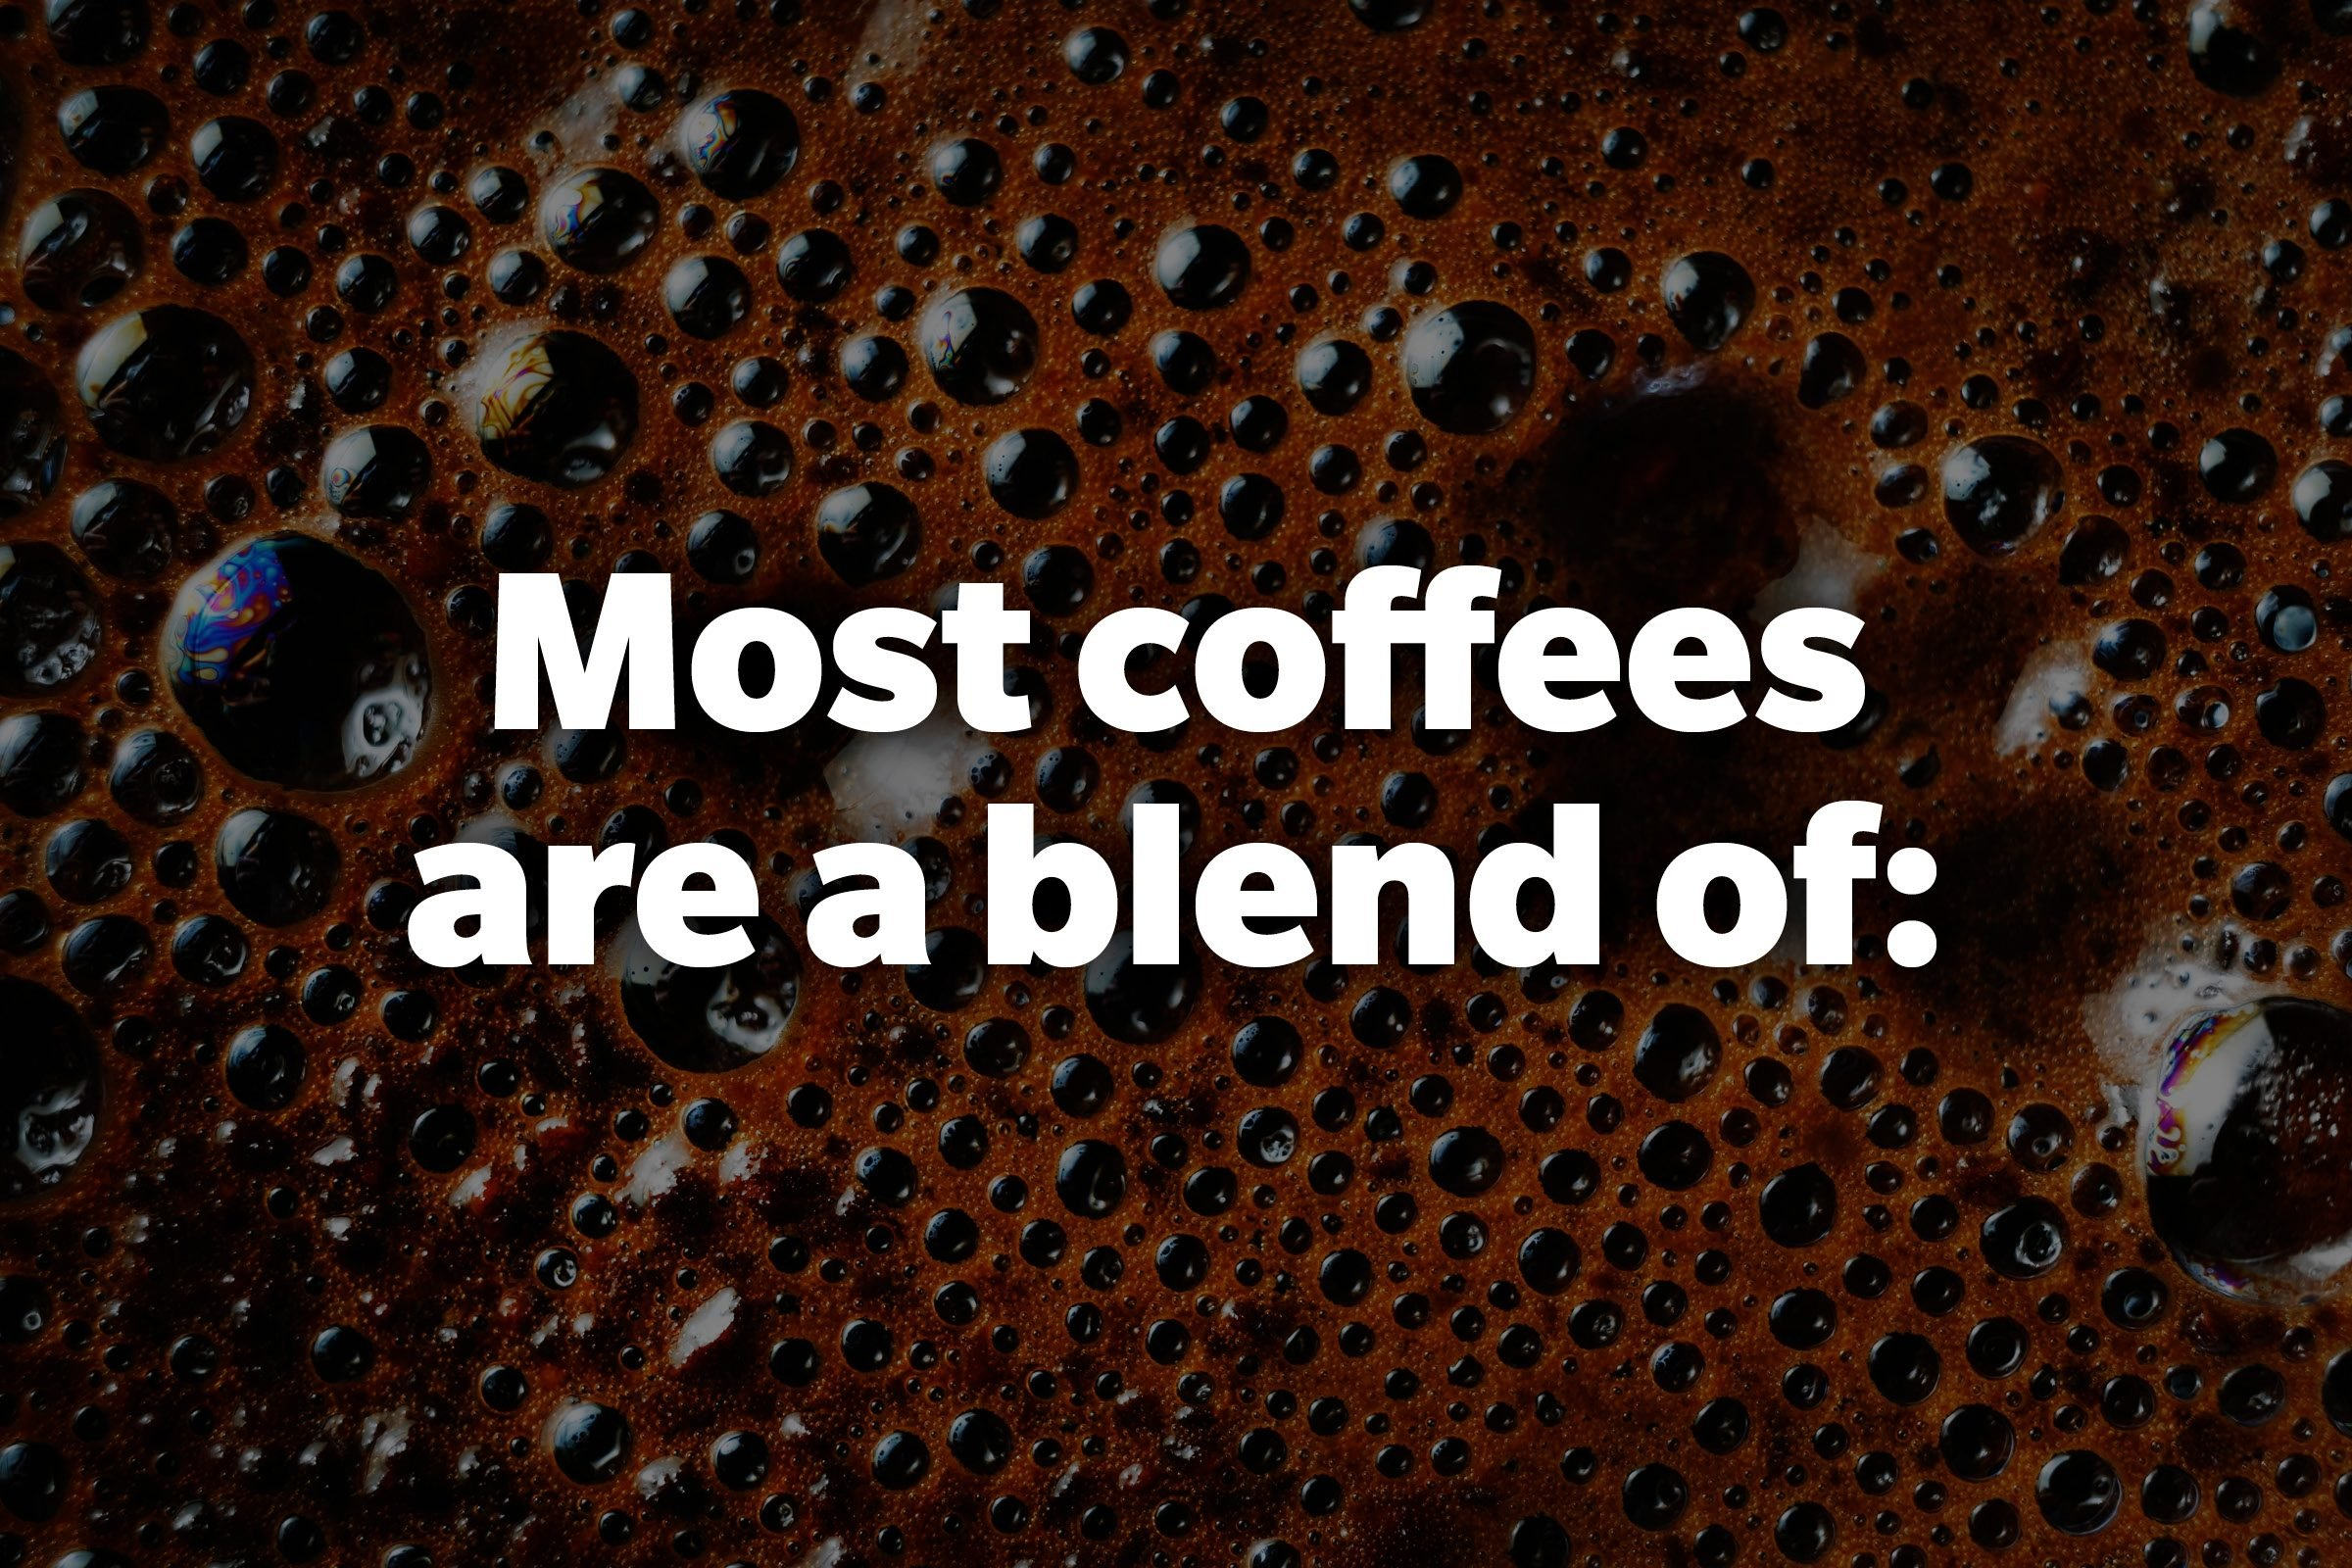 Most coffees are a blend of: